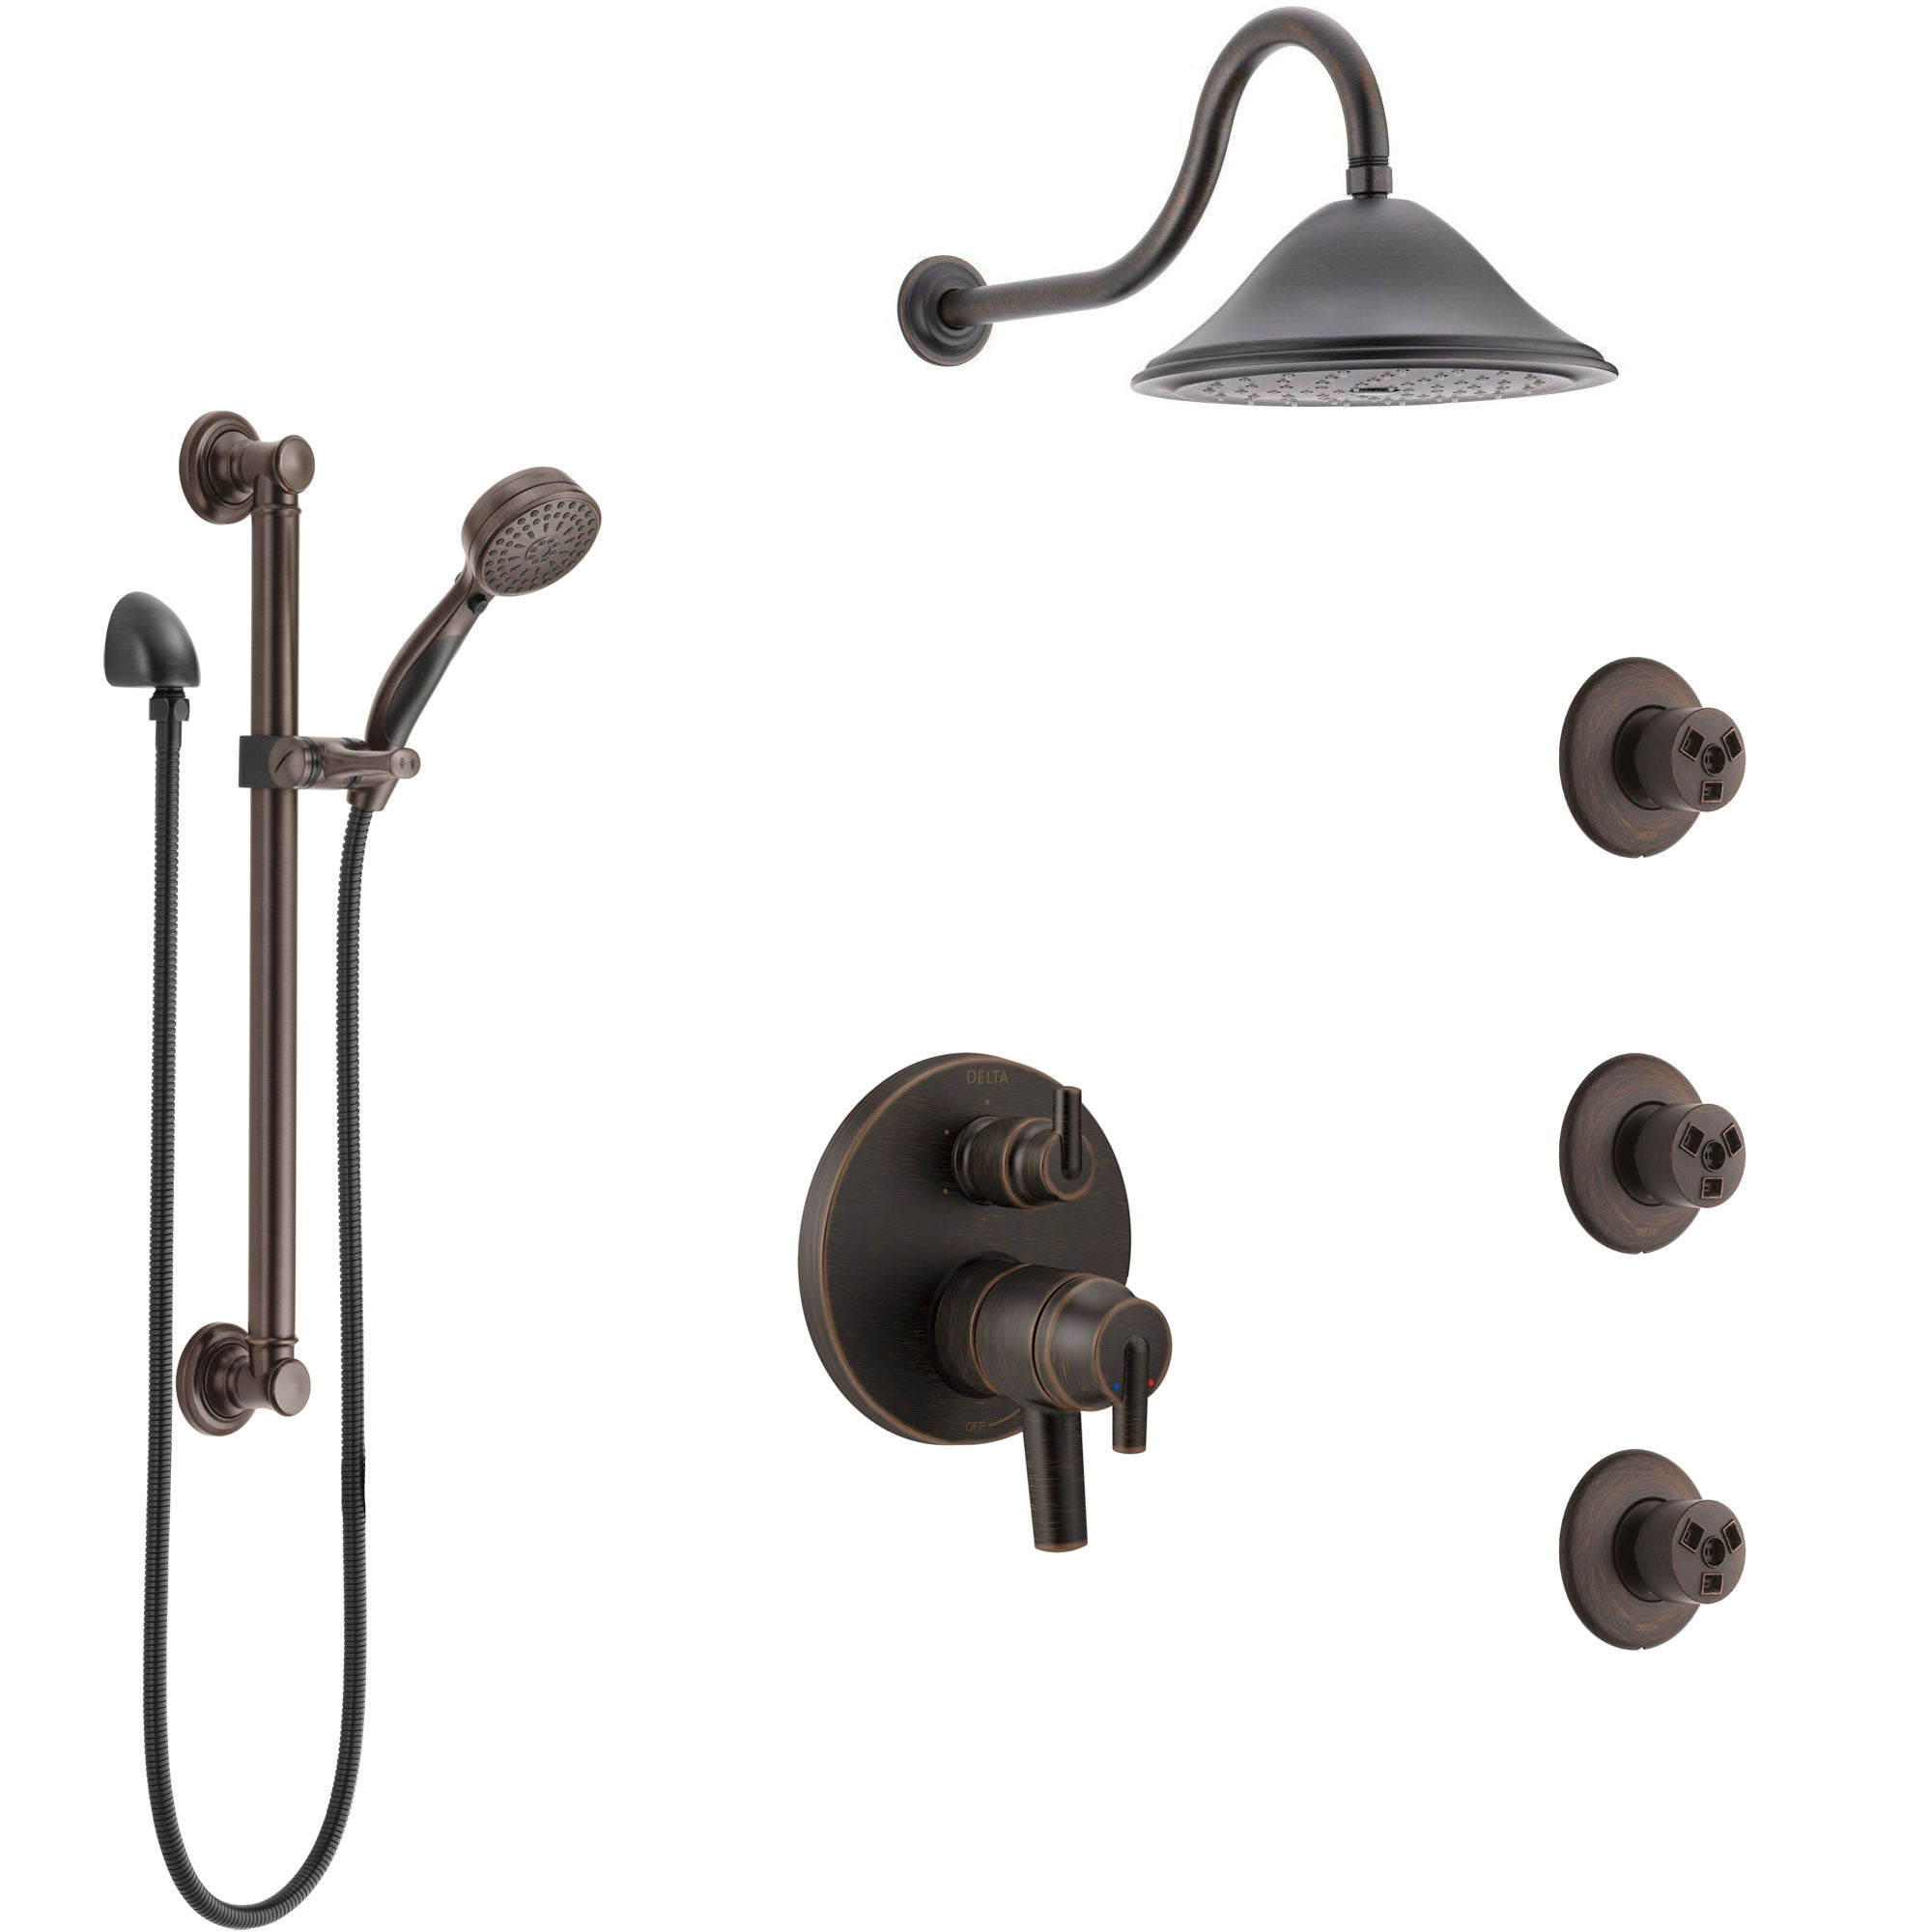 Delta Trinsic Venetian Bronze Shower System with Dual Control Handle, Integrated Diverter, Showerhead, 3 Body Sprays, Grab Bar Hand Spray SS27959RB12